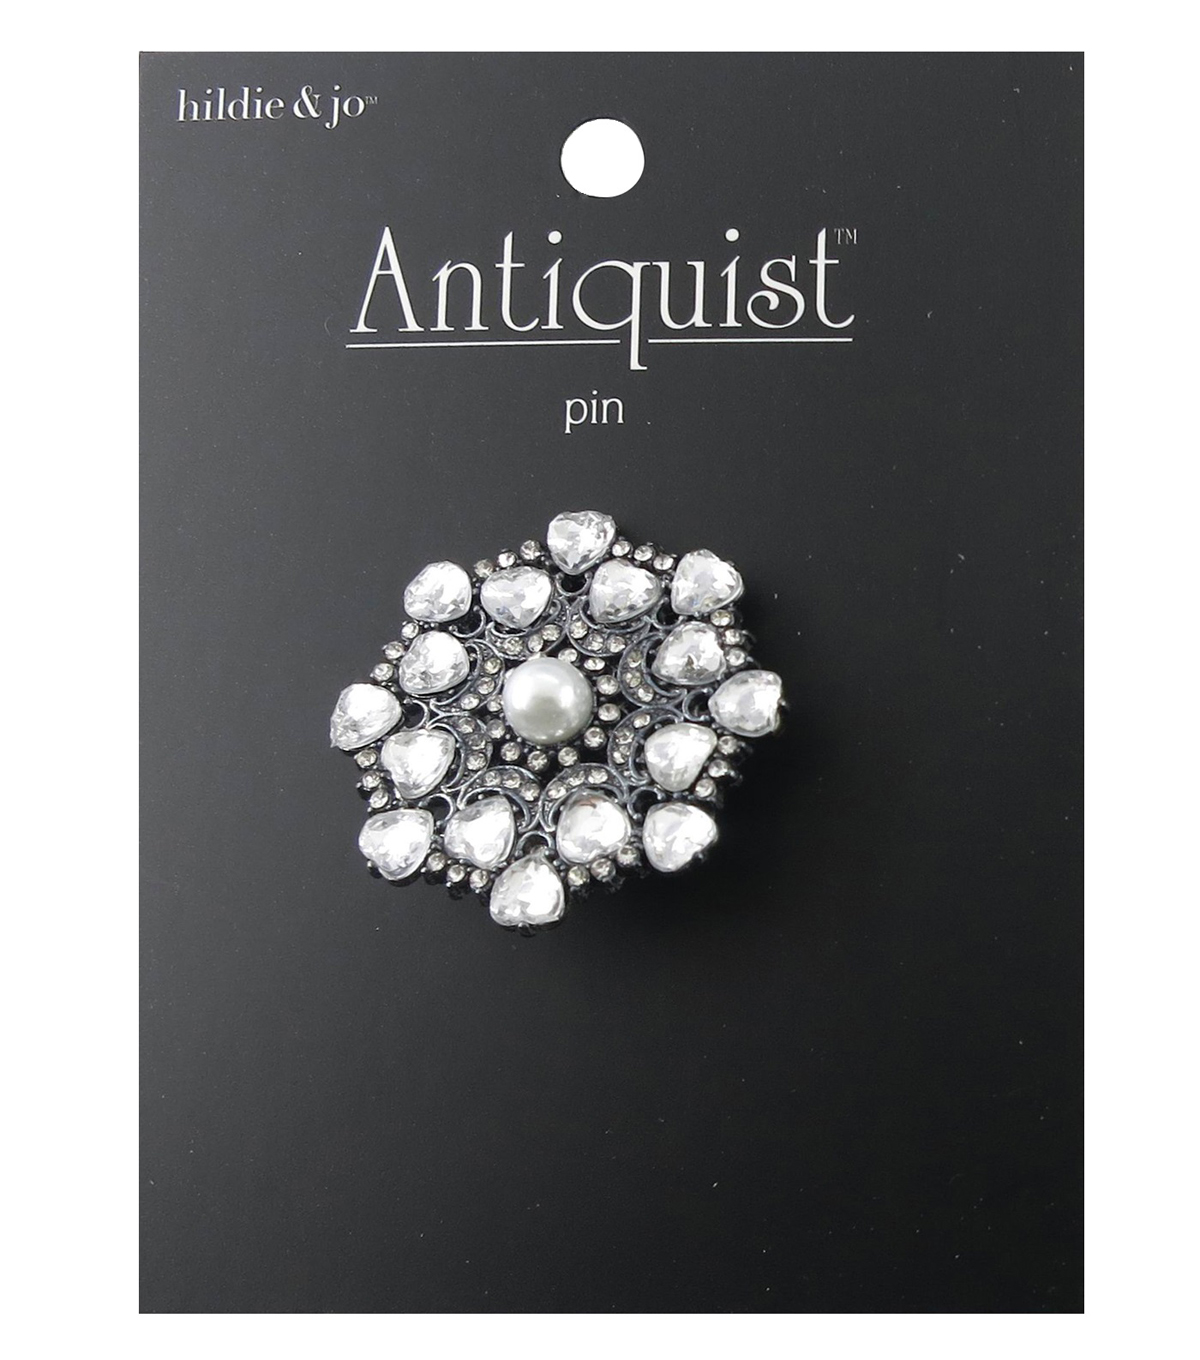 hildie & jo™ Antiquist Circle Silver Pin-Pearl & Clear Crystals